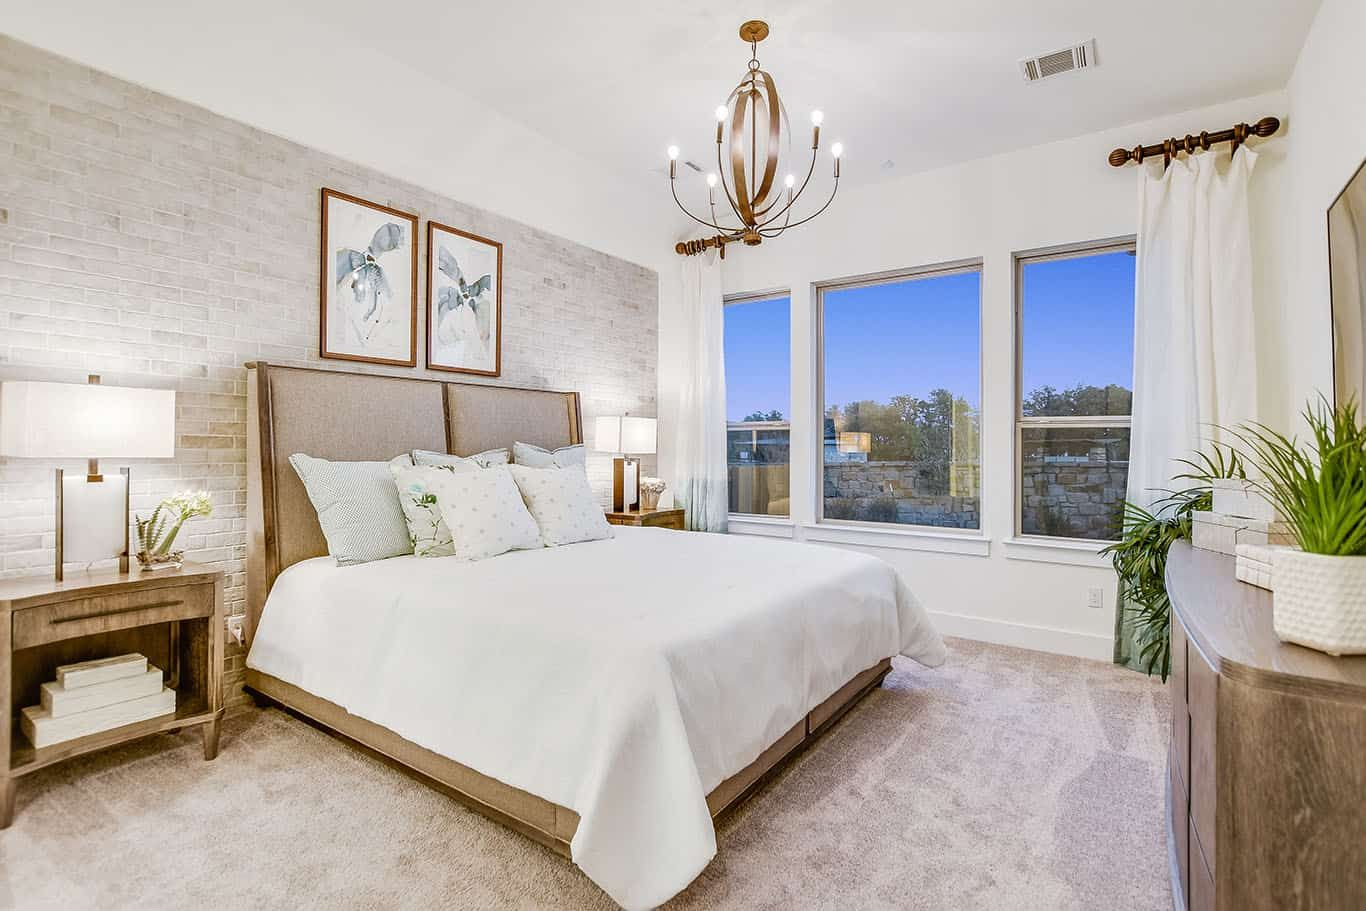 Bedroom featured in the Foss By Tri Pointe Homes in Austin, TX